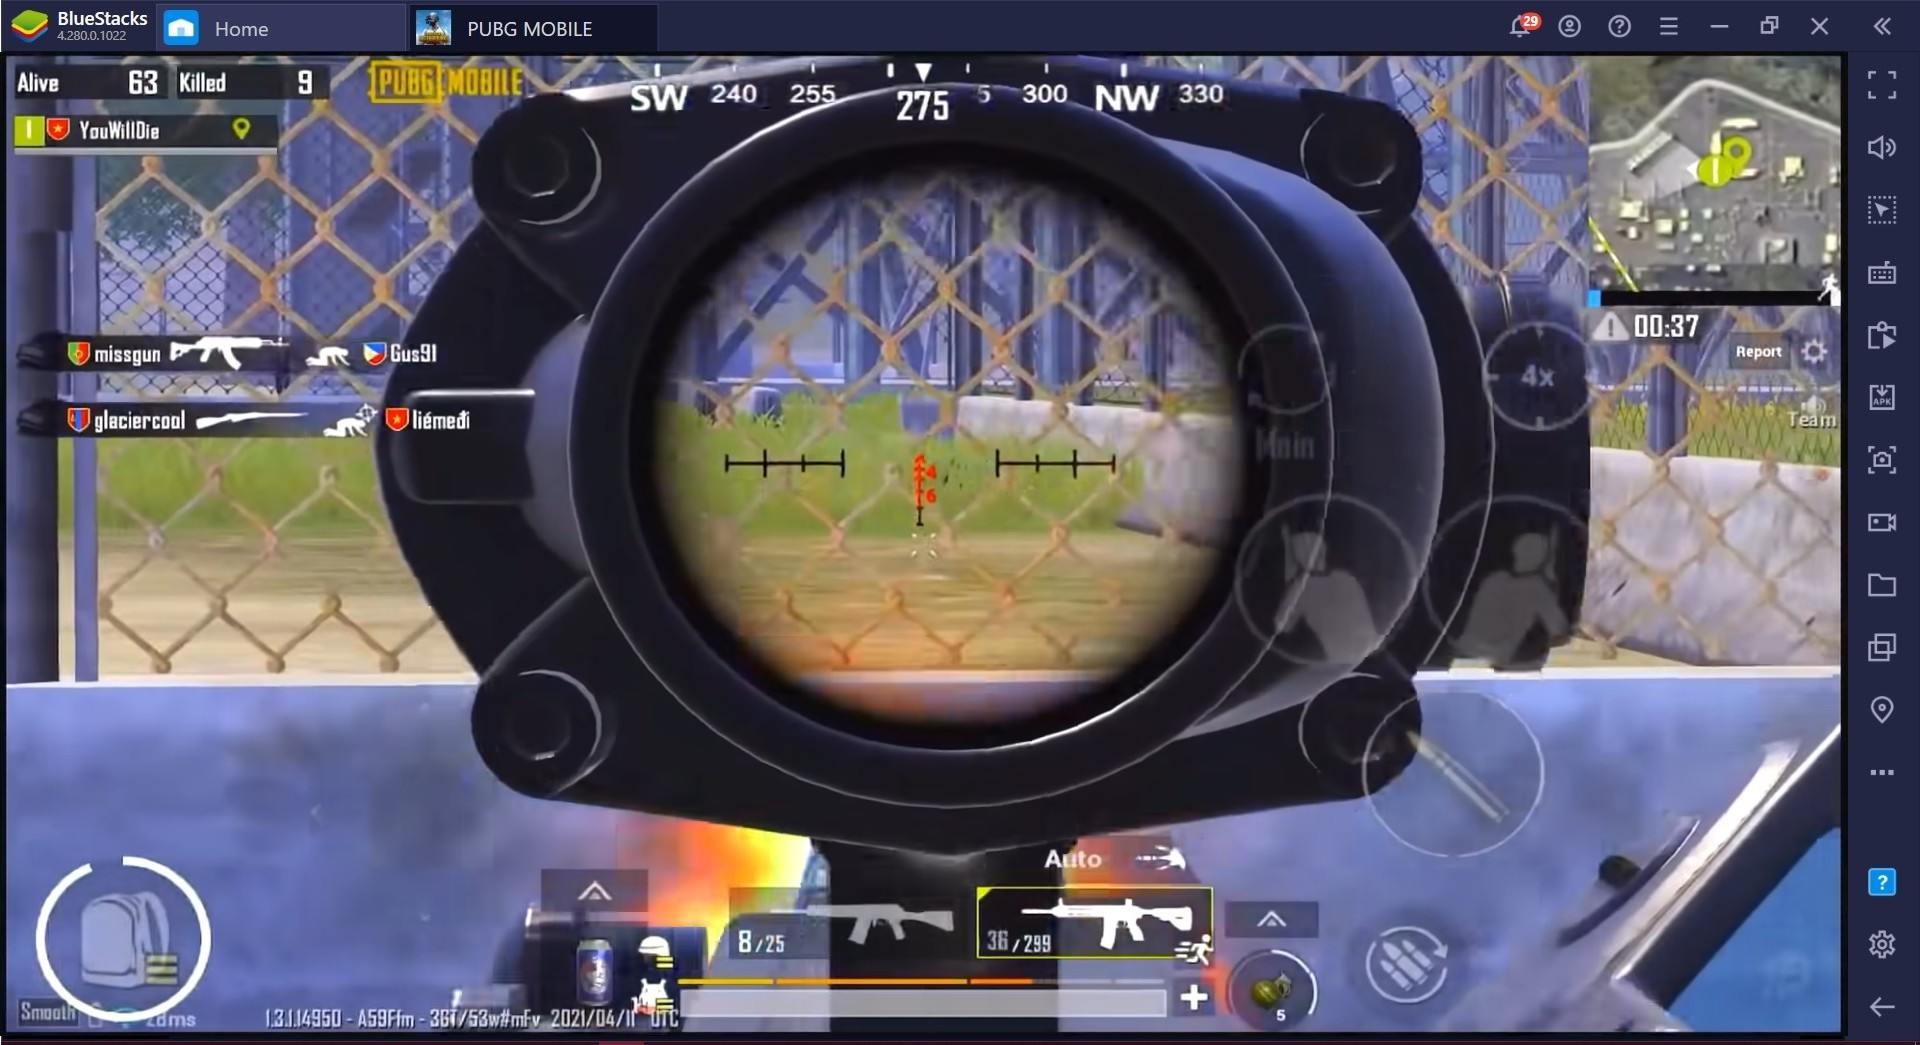 A PUBG Mobile Guide that is Putting all those Debates to Rest: Aggressive vs Camping, Hips Fire vs ADS, K/D and Rank